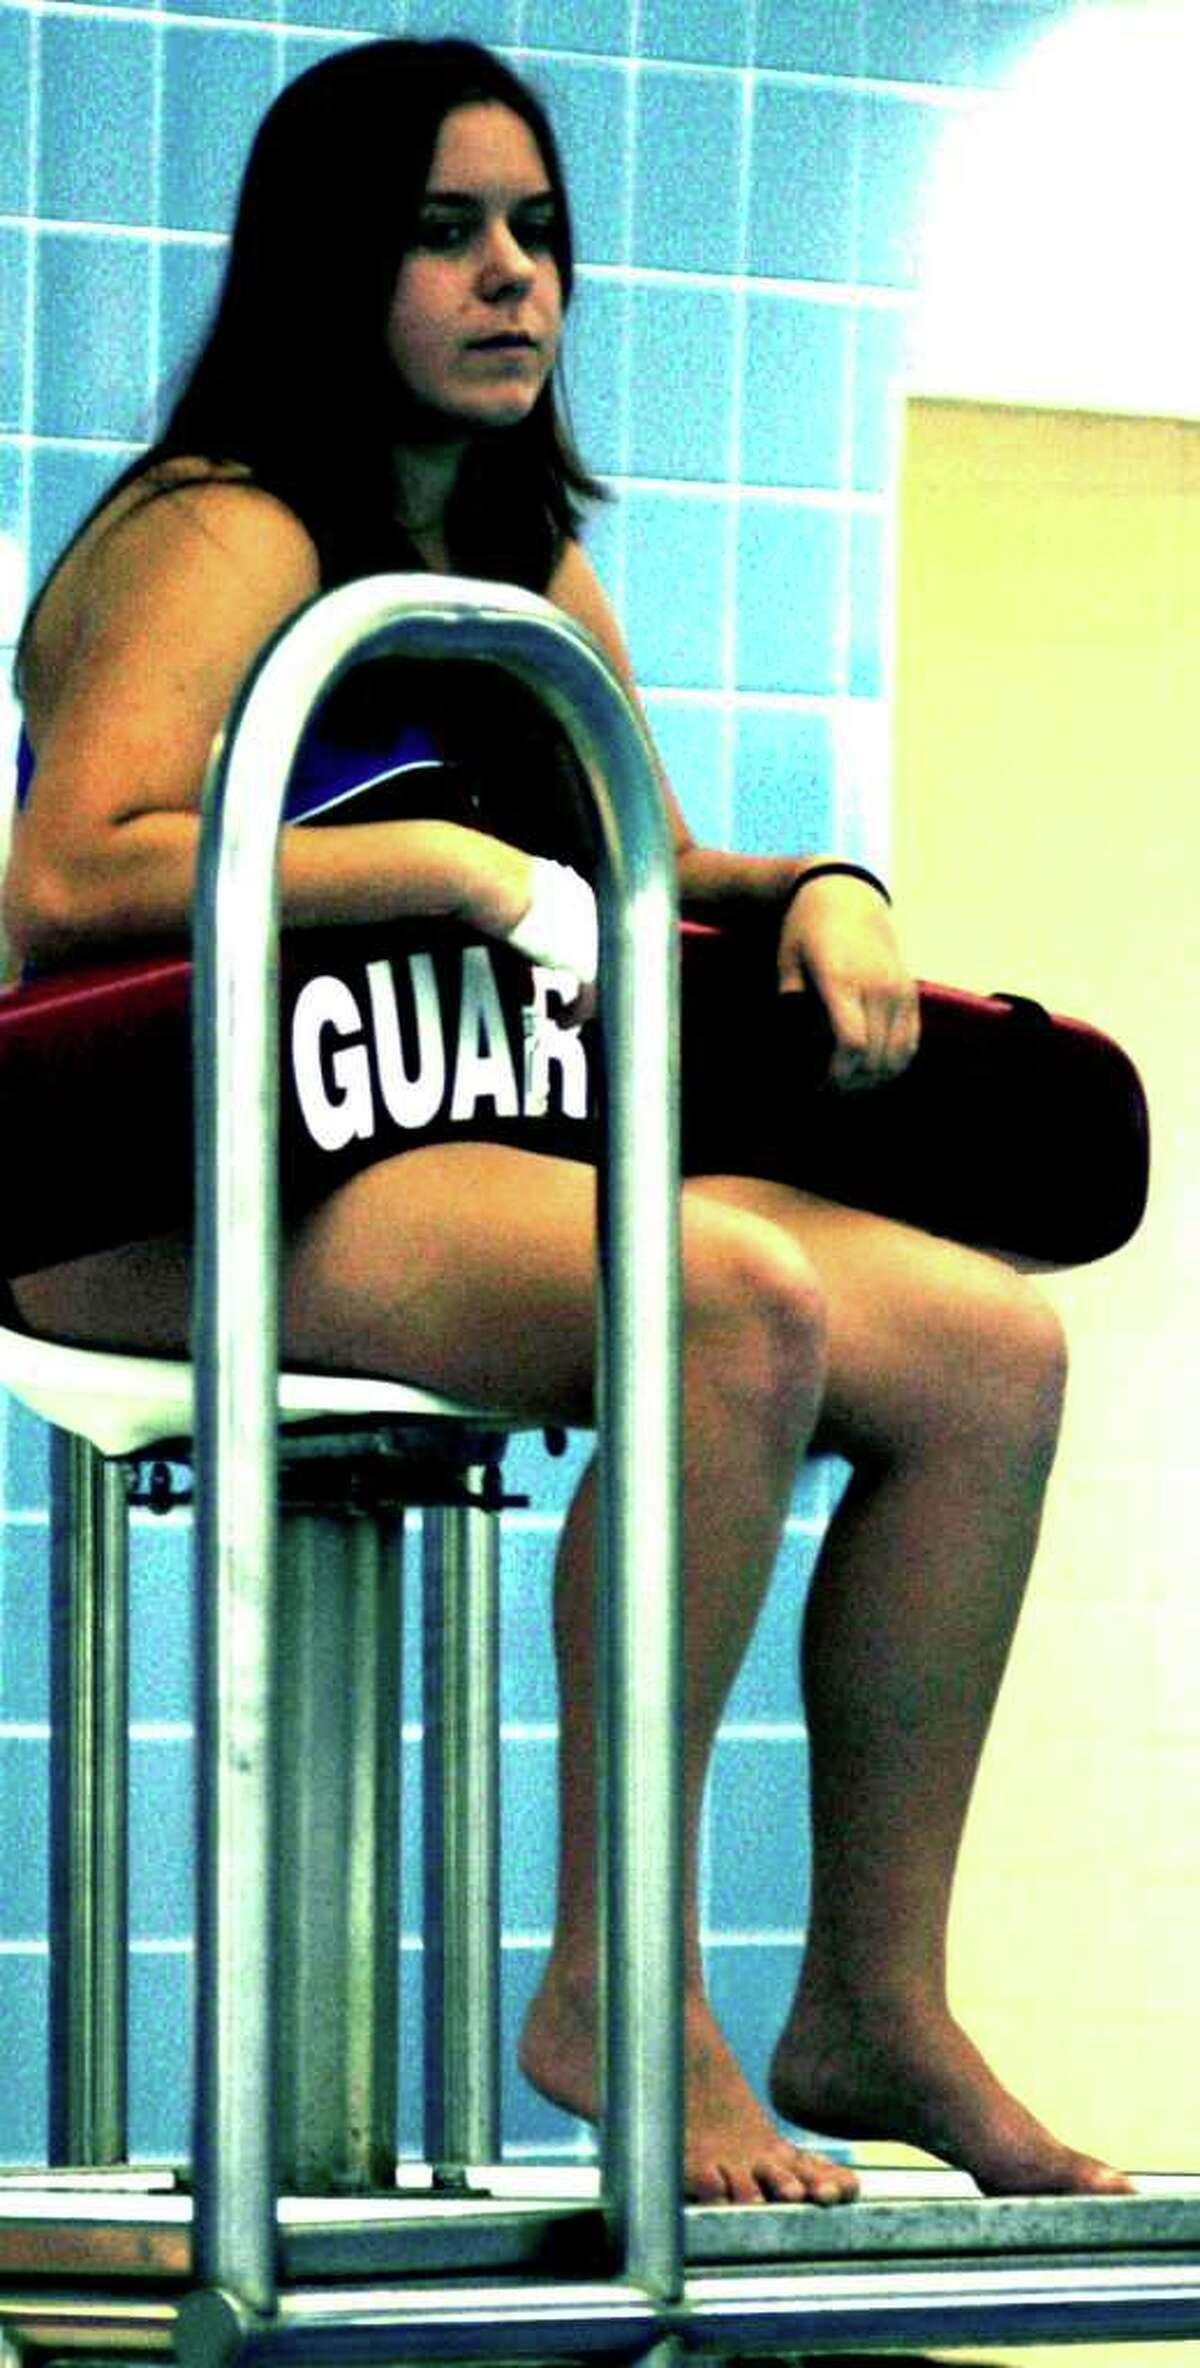 SPECTRUM/Brice Schrenkel of New Milford High School girls' swimming keeps busy as lifeguard for a practice while she awaits her return from injury, September 2011